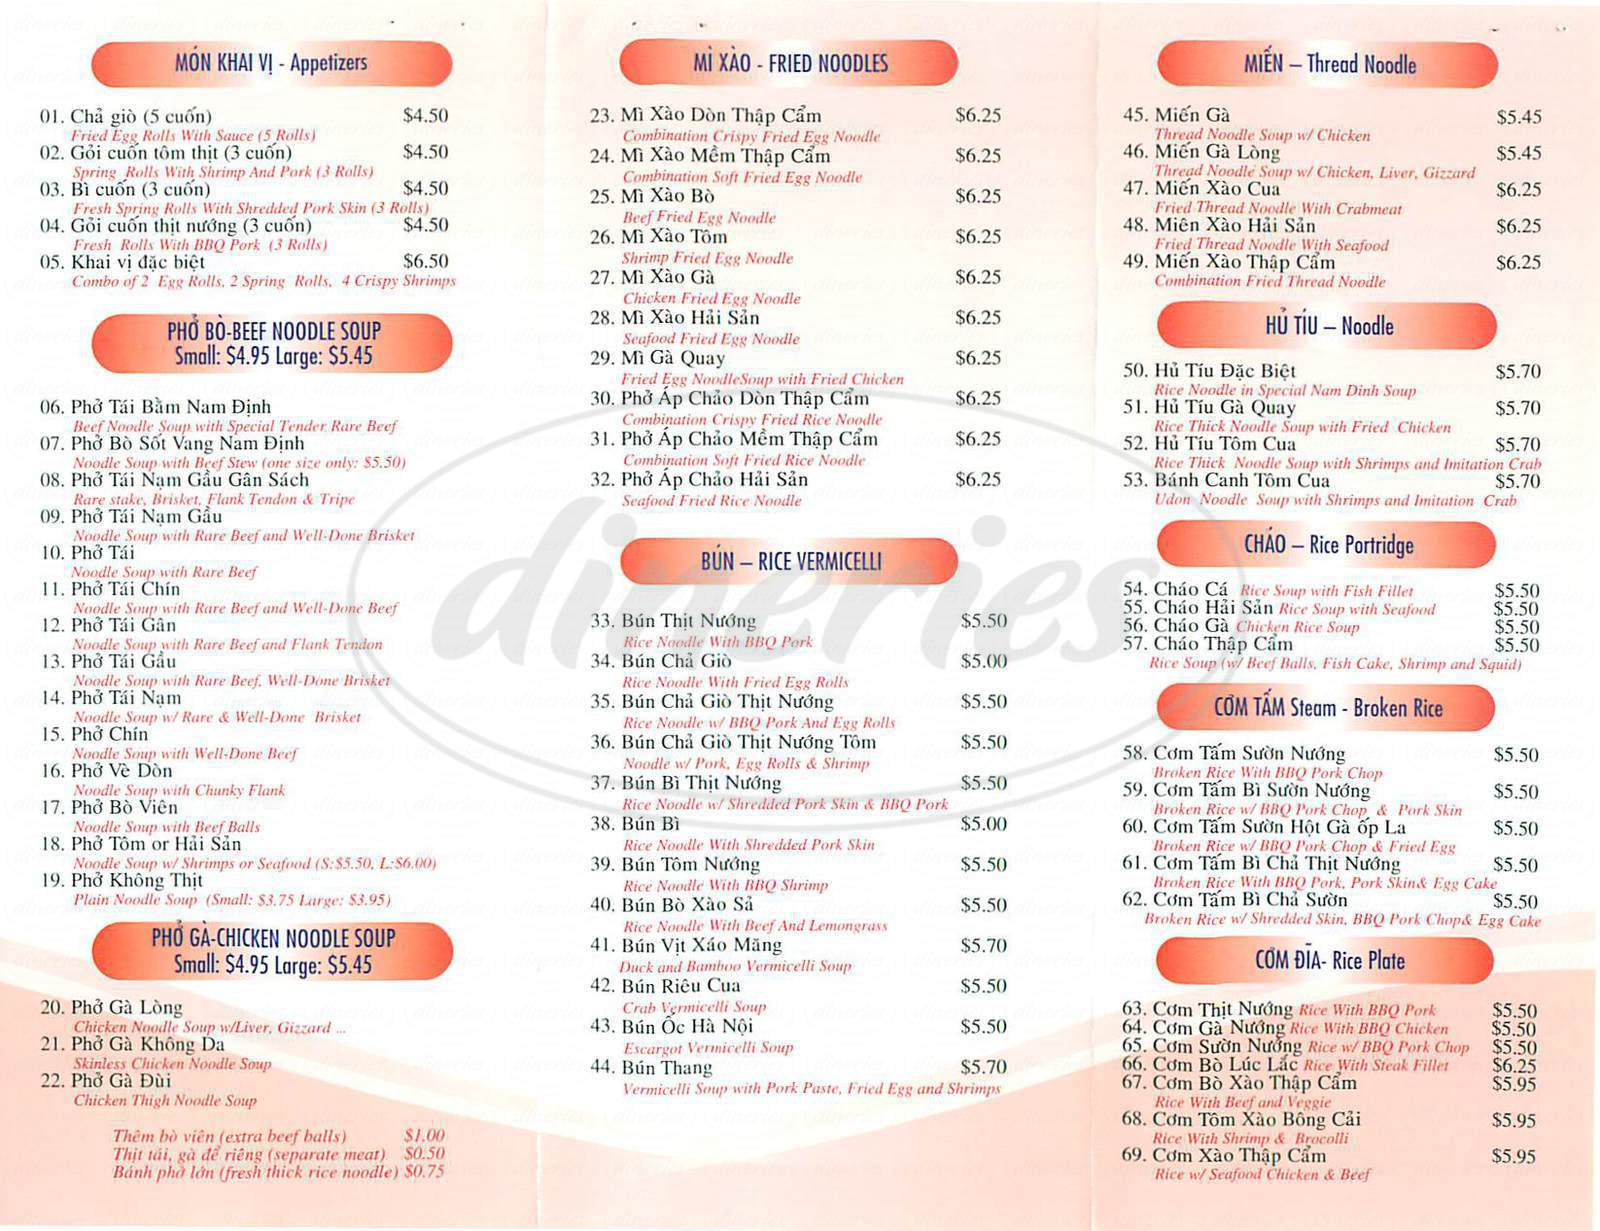 menu for Pho Nam Dinh